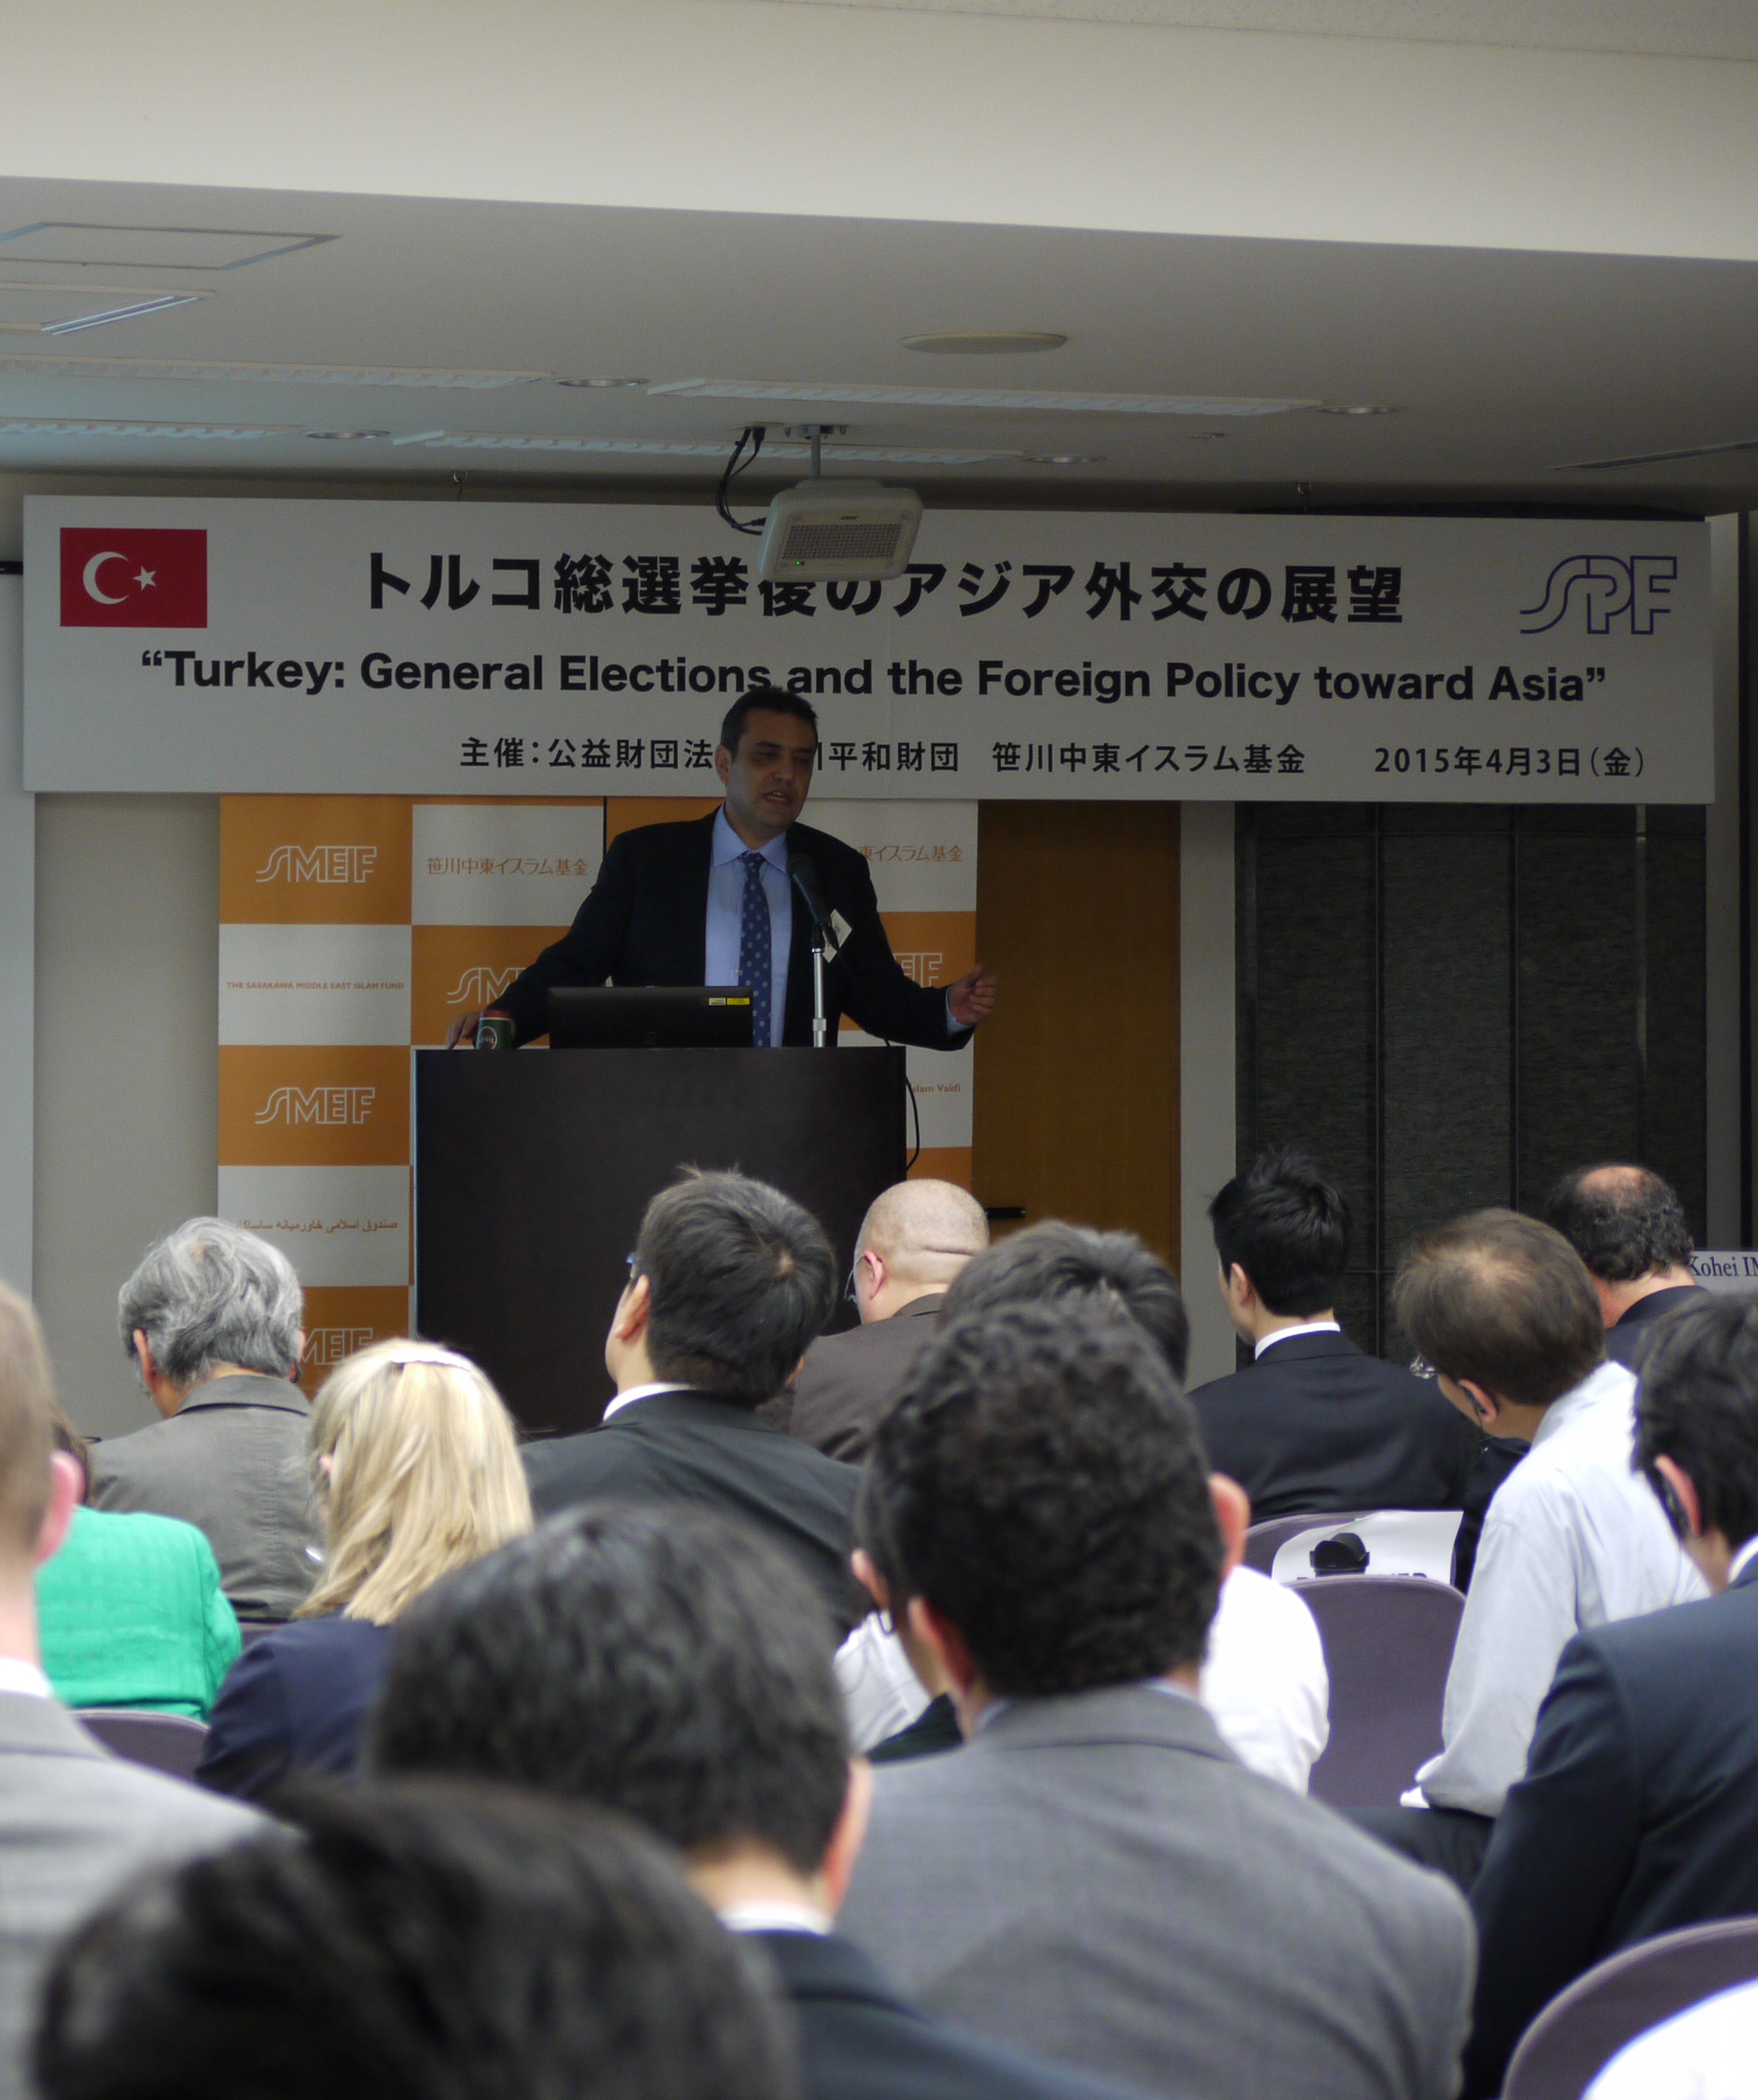 Deepening Mutual Understanding between Japan and the Middle East